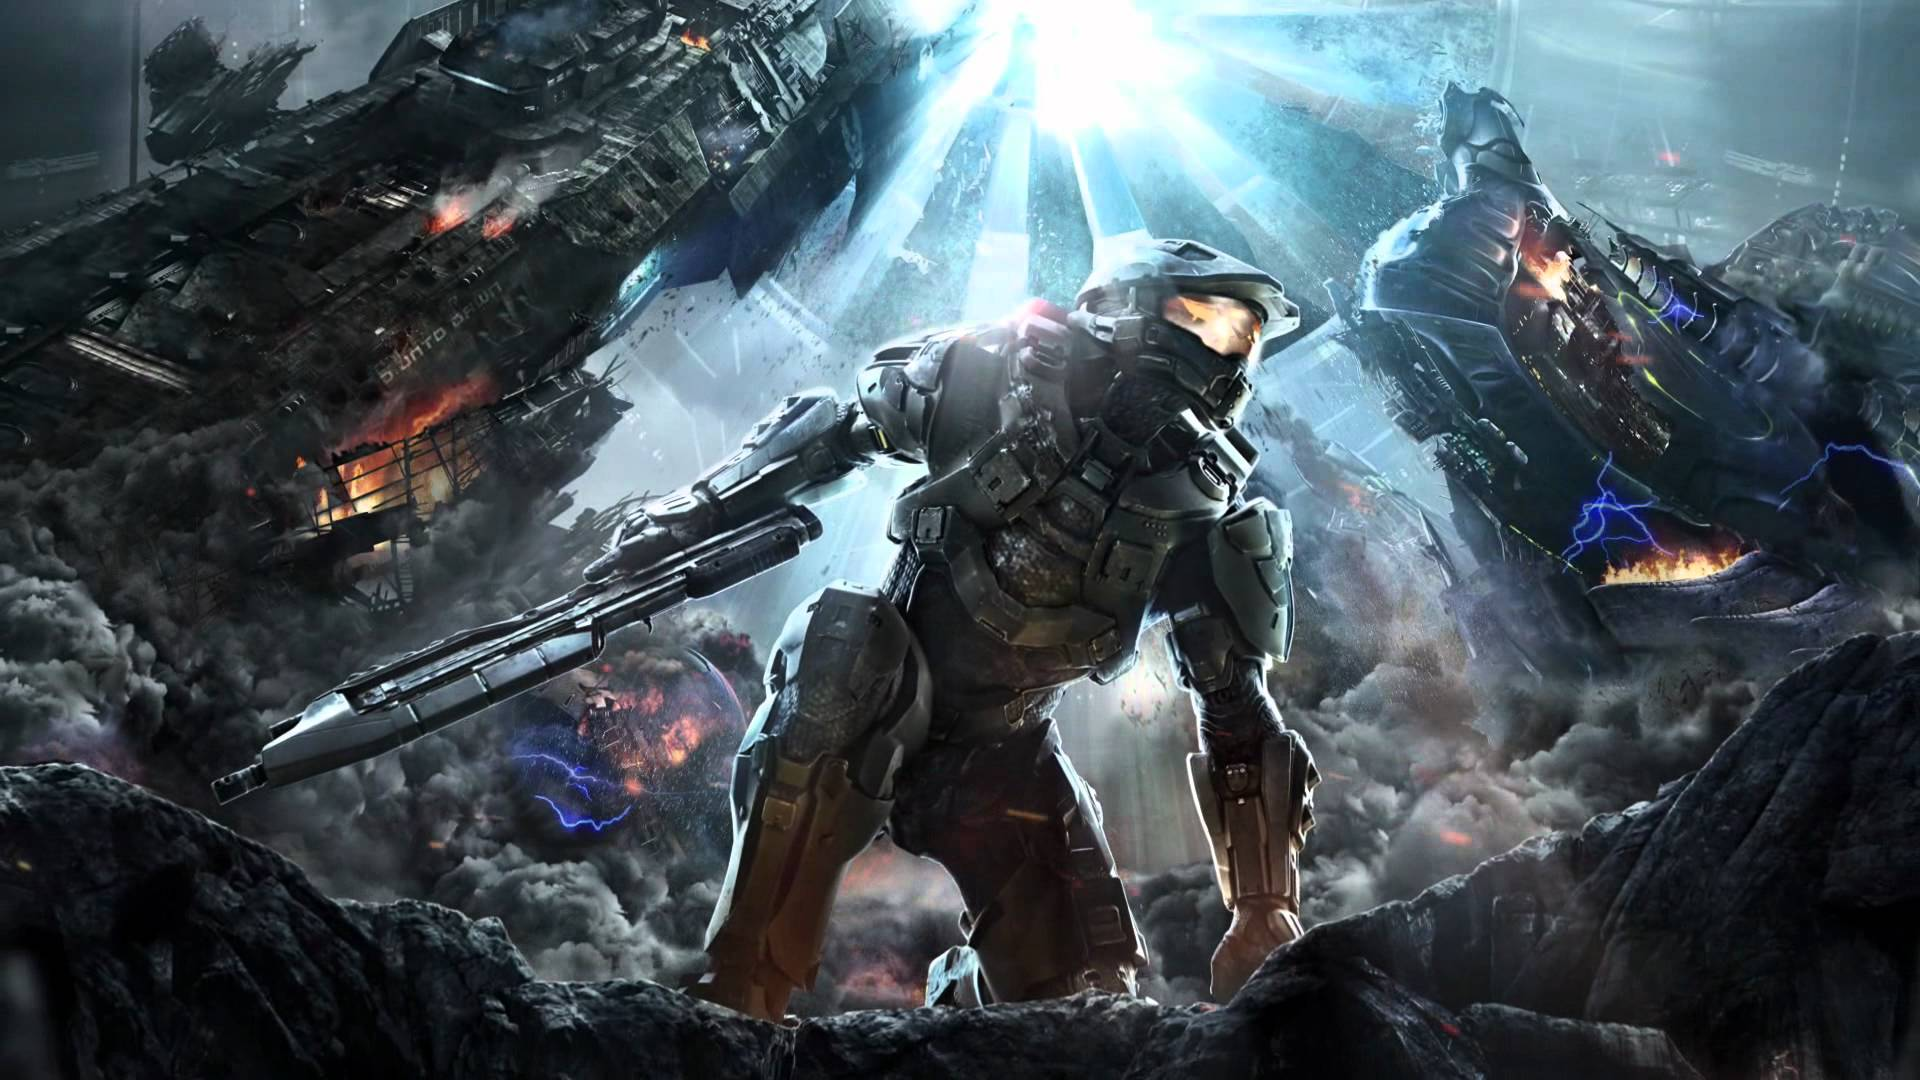 Halo 4 HD wallpapers, Desktop wallpaper - most viewed